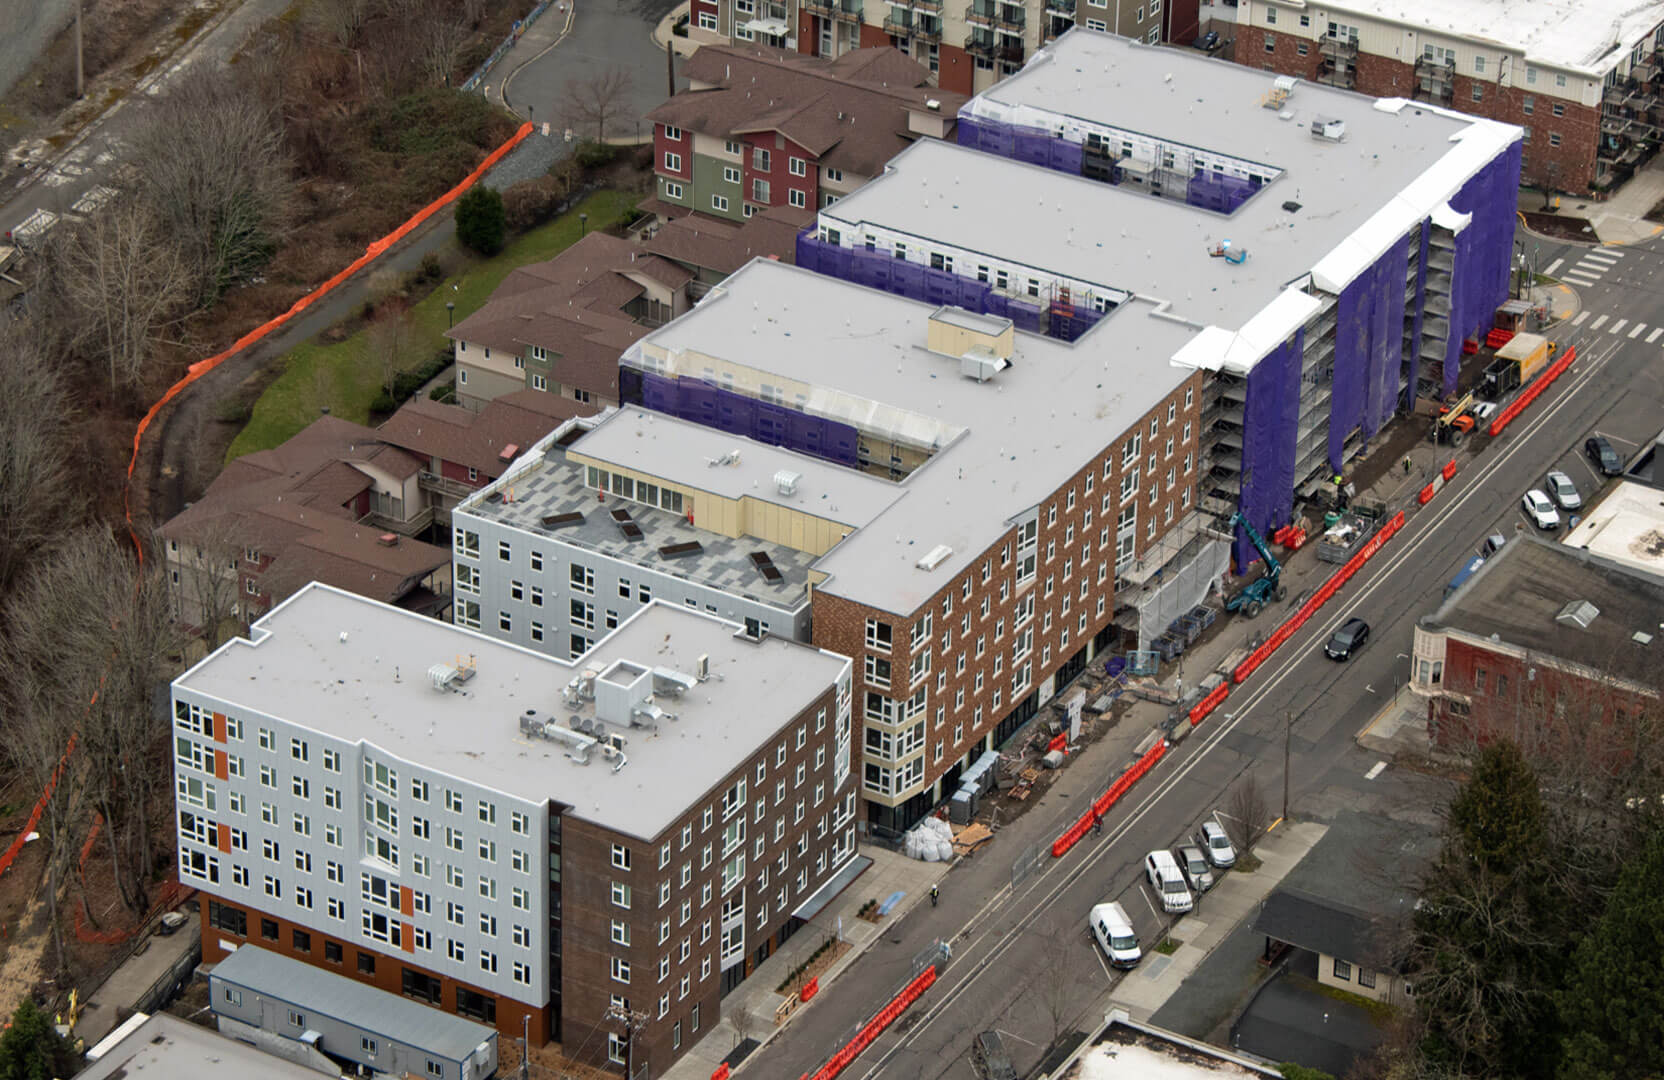 Aerial View of Stateside Apartments Undergoing Construction